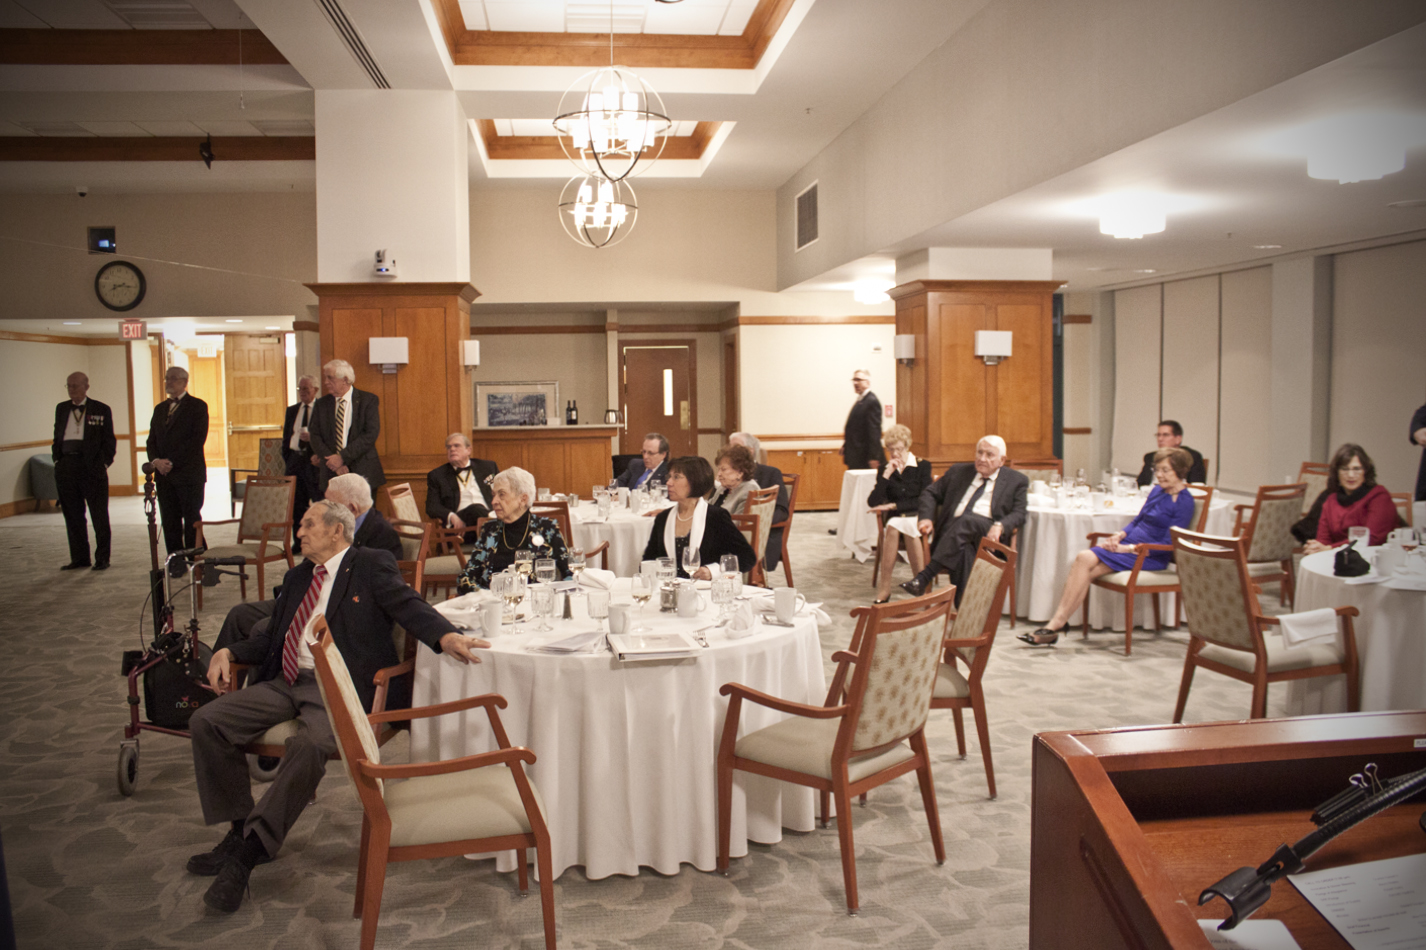 Members and their wives and guests listen to VASSAR President Mike Elston's presentation